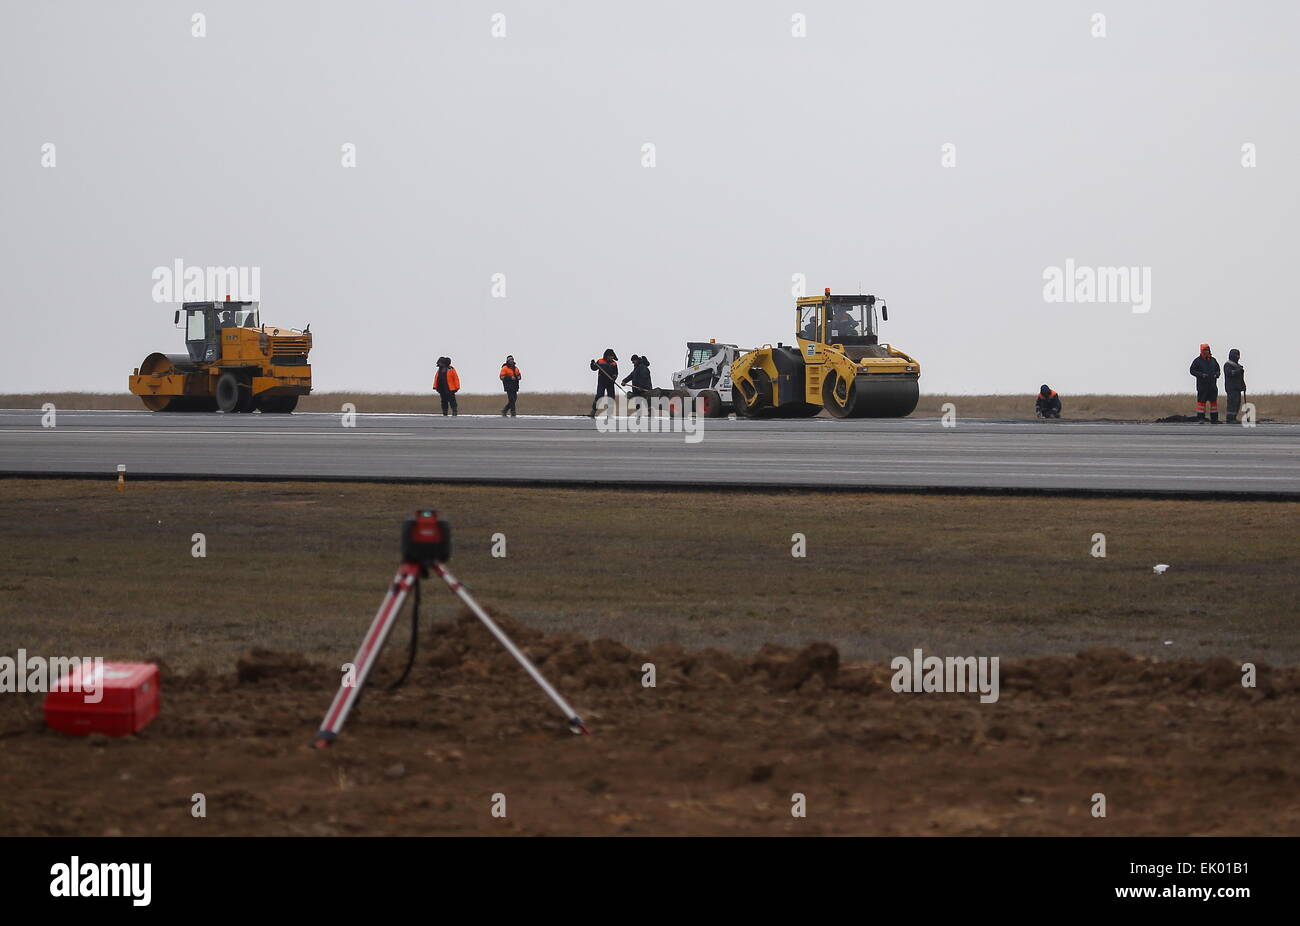 Volgograd, Russia. 2nd Apr, 2015. A new passenger terminal of the Volgograd International Airport under construction - Stock Image